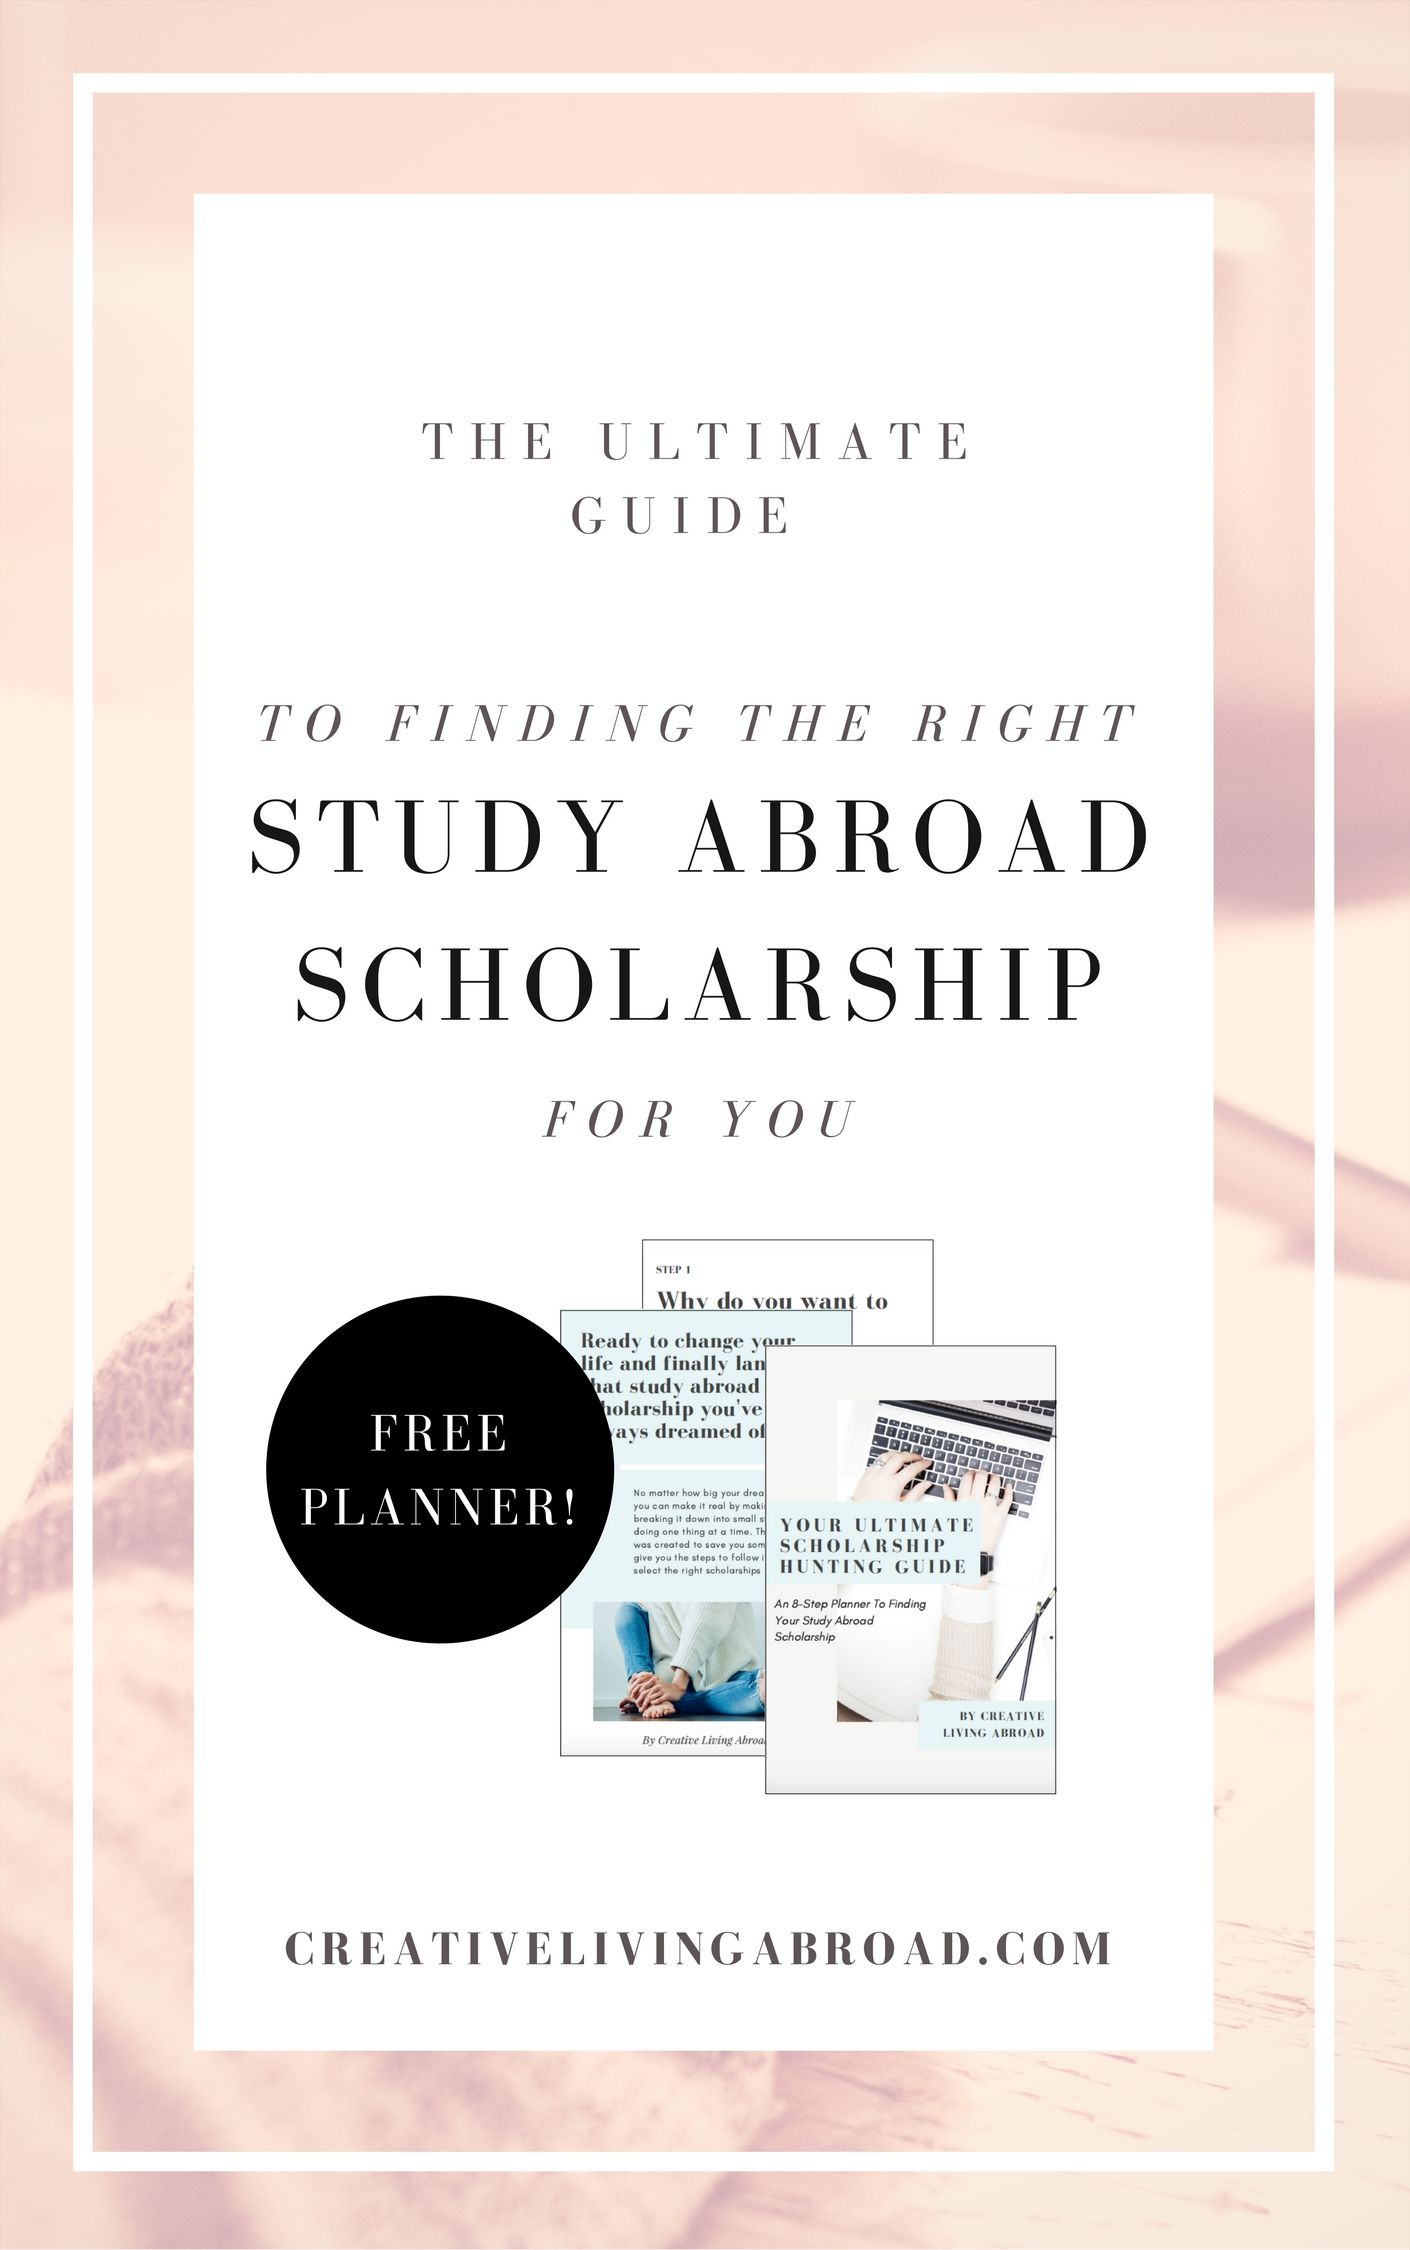 676b1235ed532566ebc8395234a51345 - How Can I Get A Full Scholarship To Study Abroad